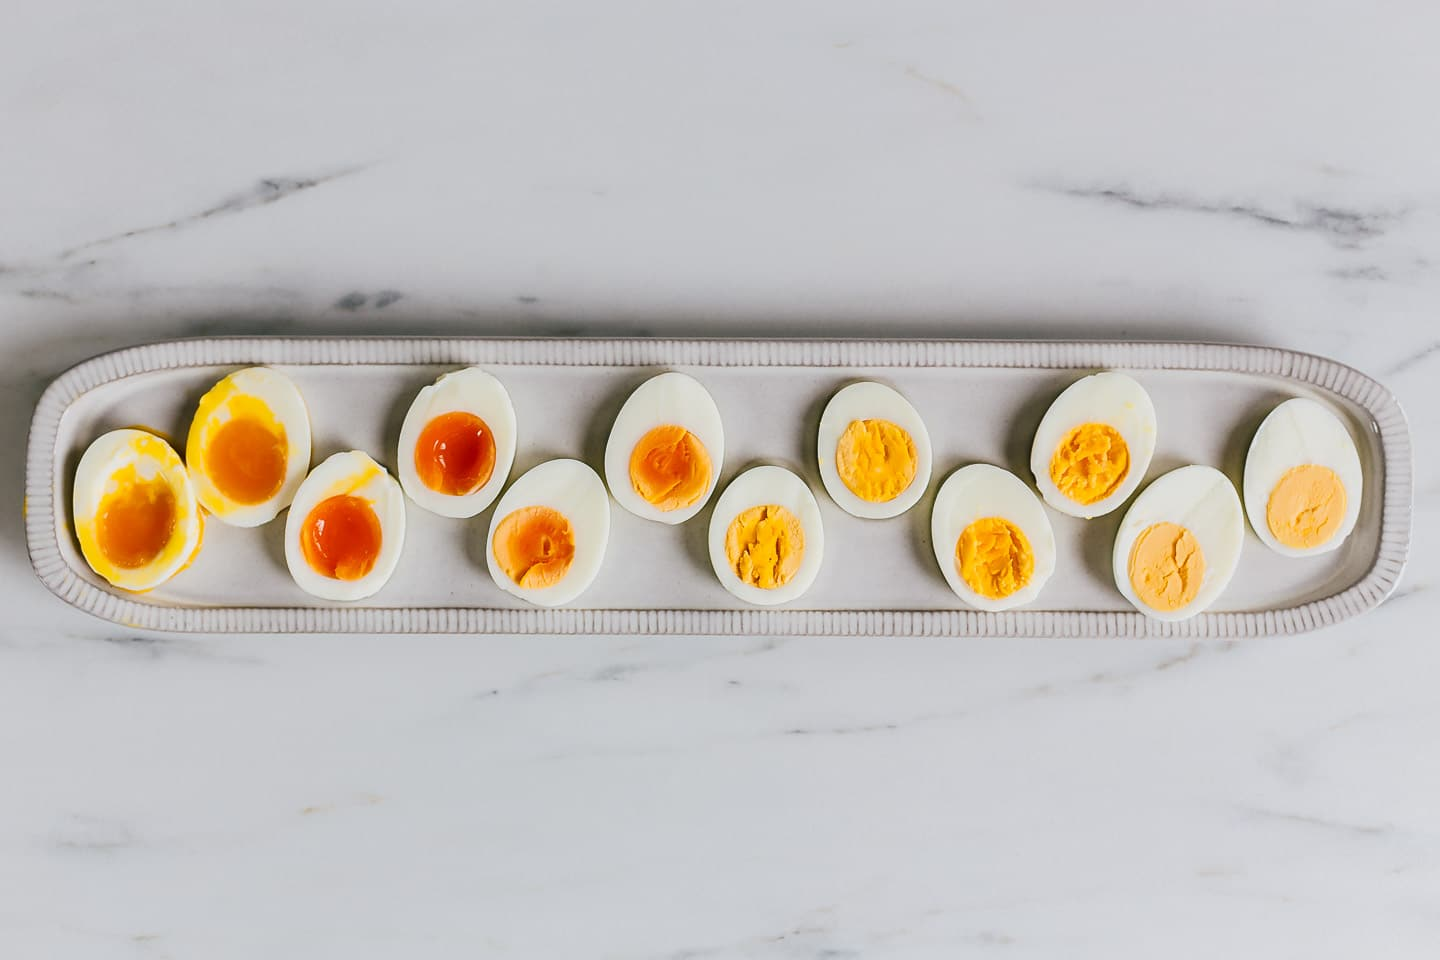 a tray of soft boiled eggs and hard boiled eggs